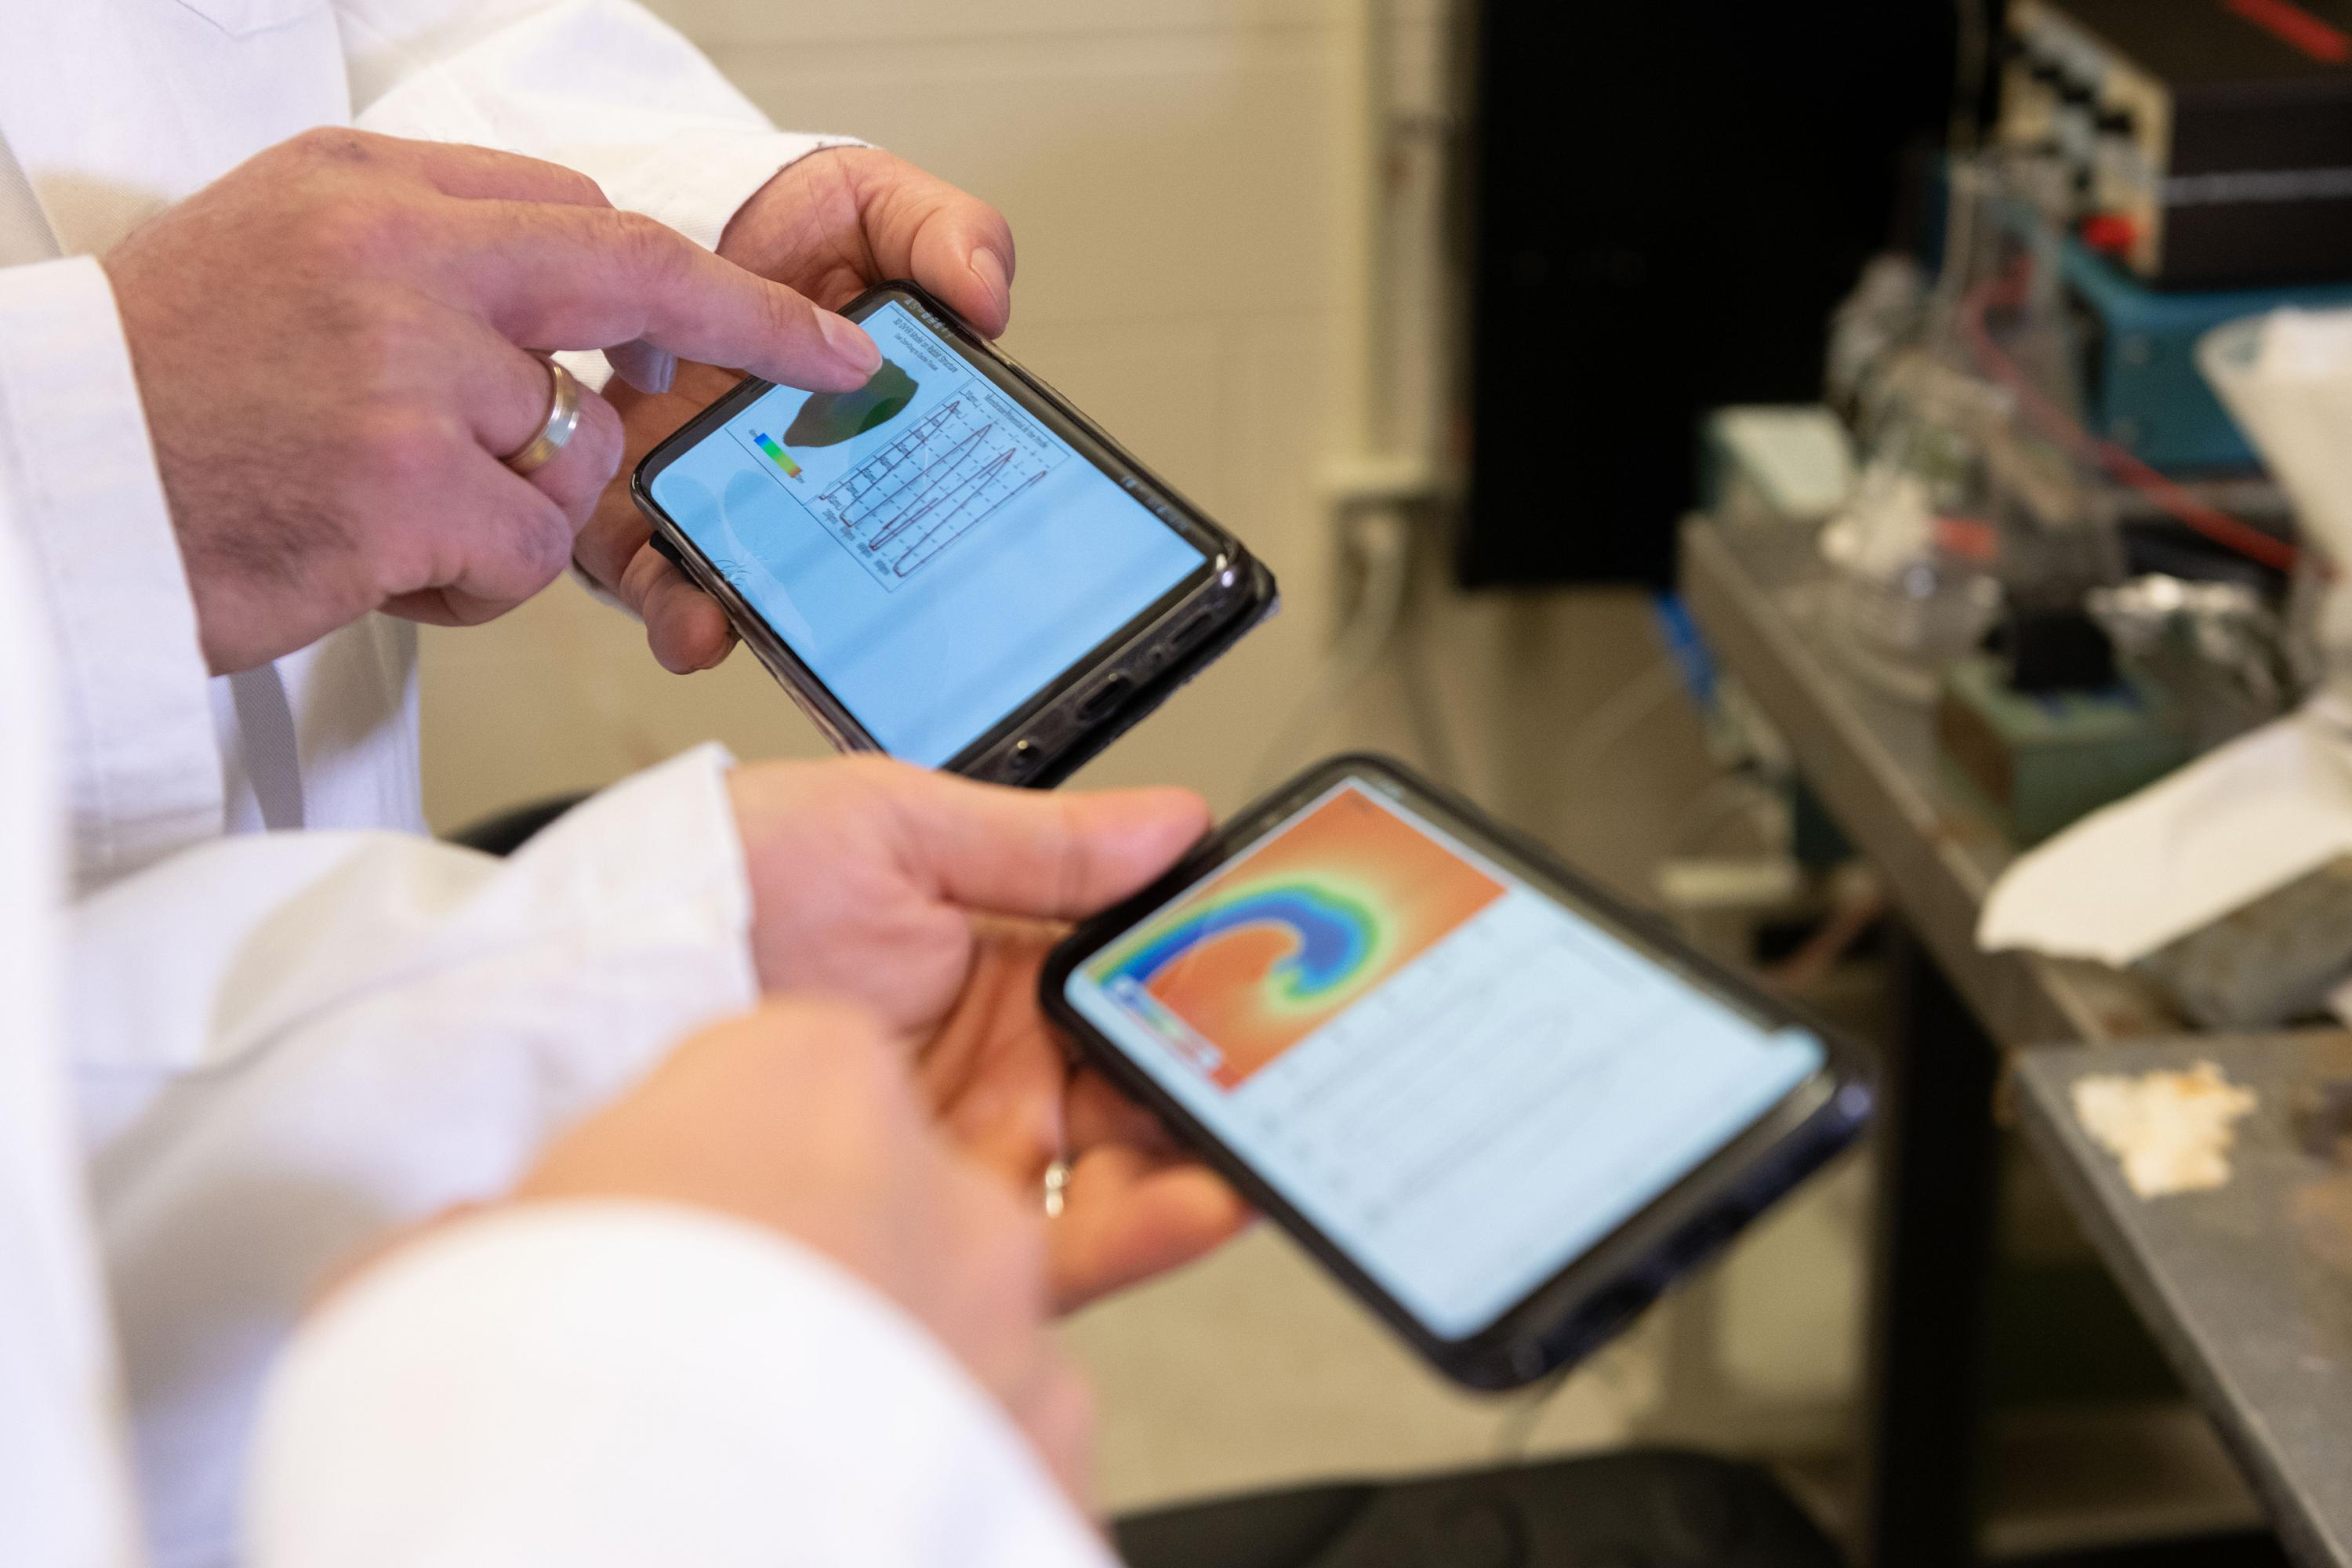 Smartphone screens showing cardiac simulations